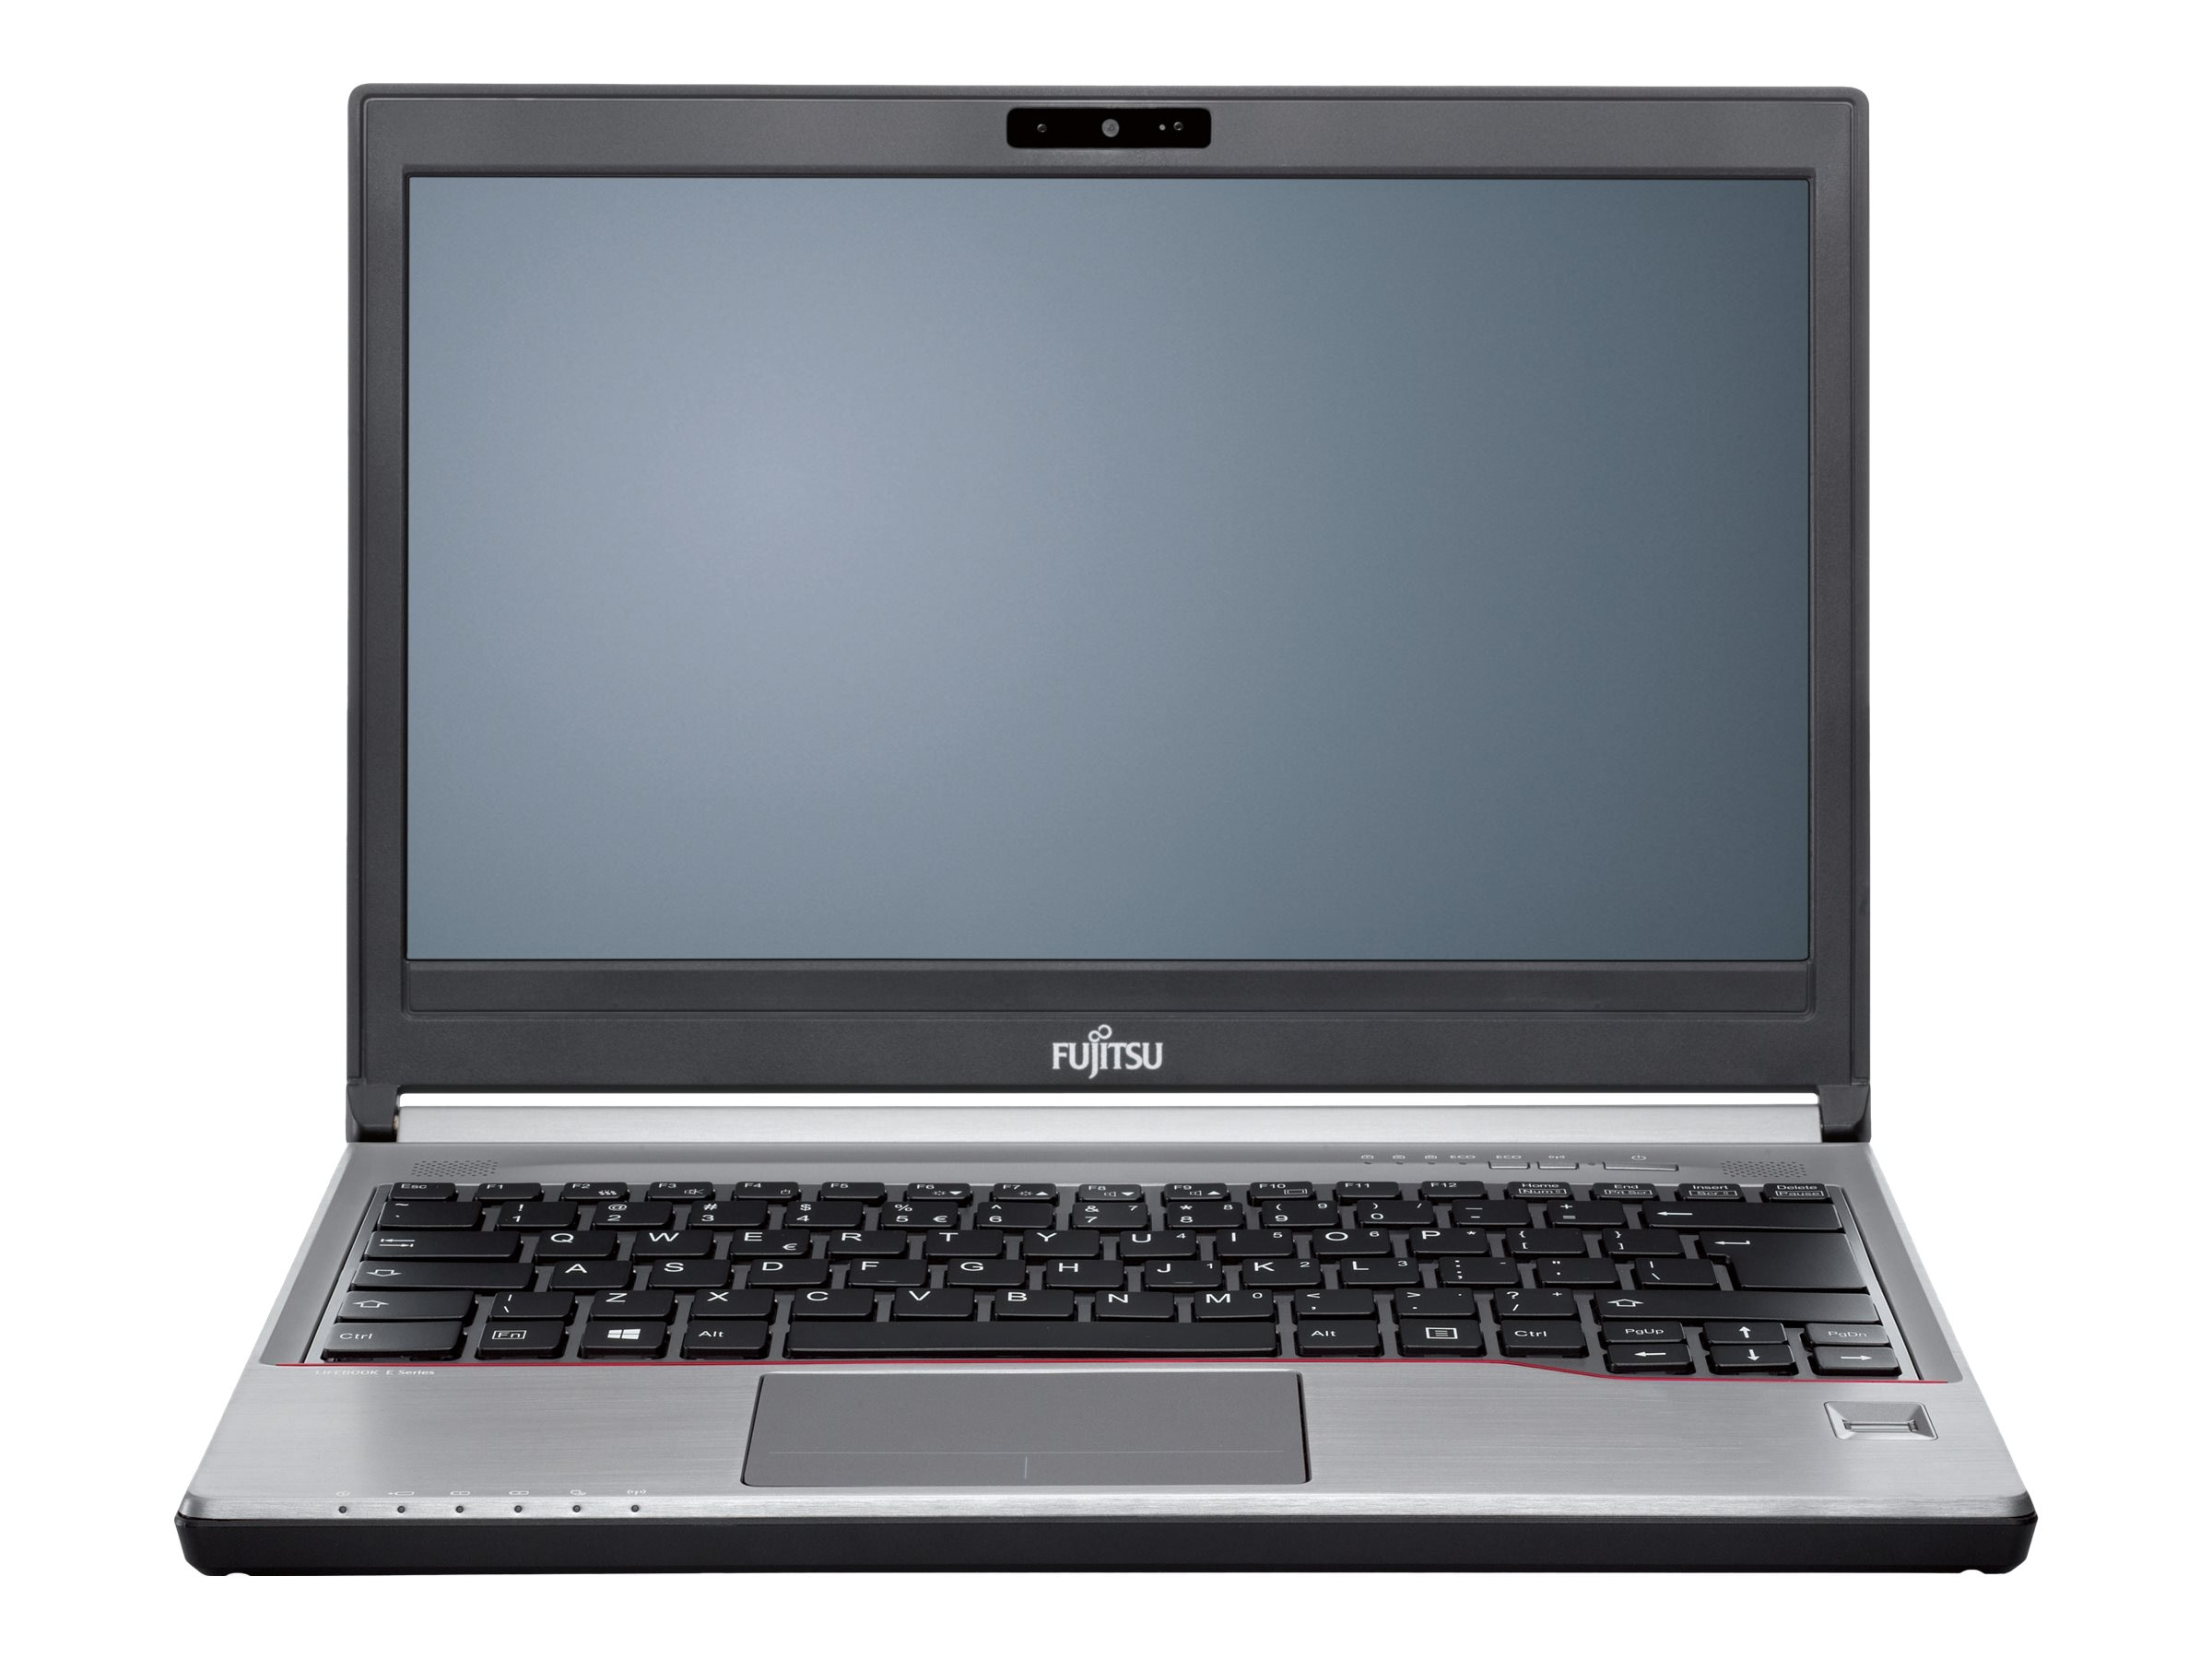 Fujitsu LifeBook E736 2.3GHz Core i5 13.3in display